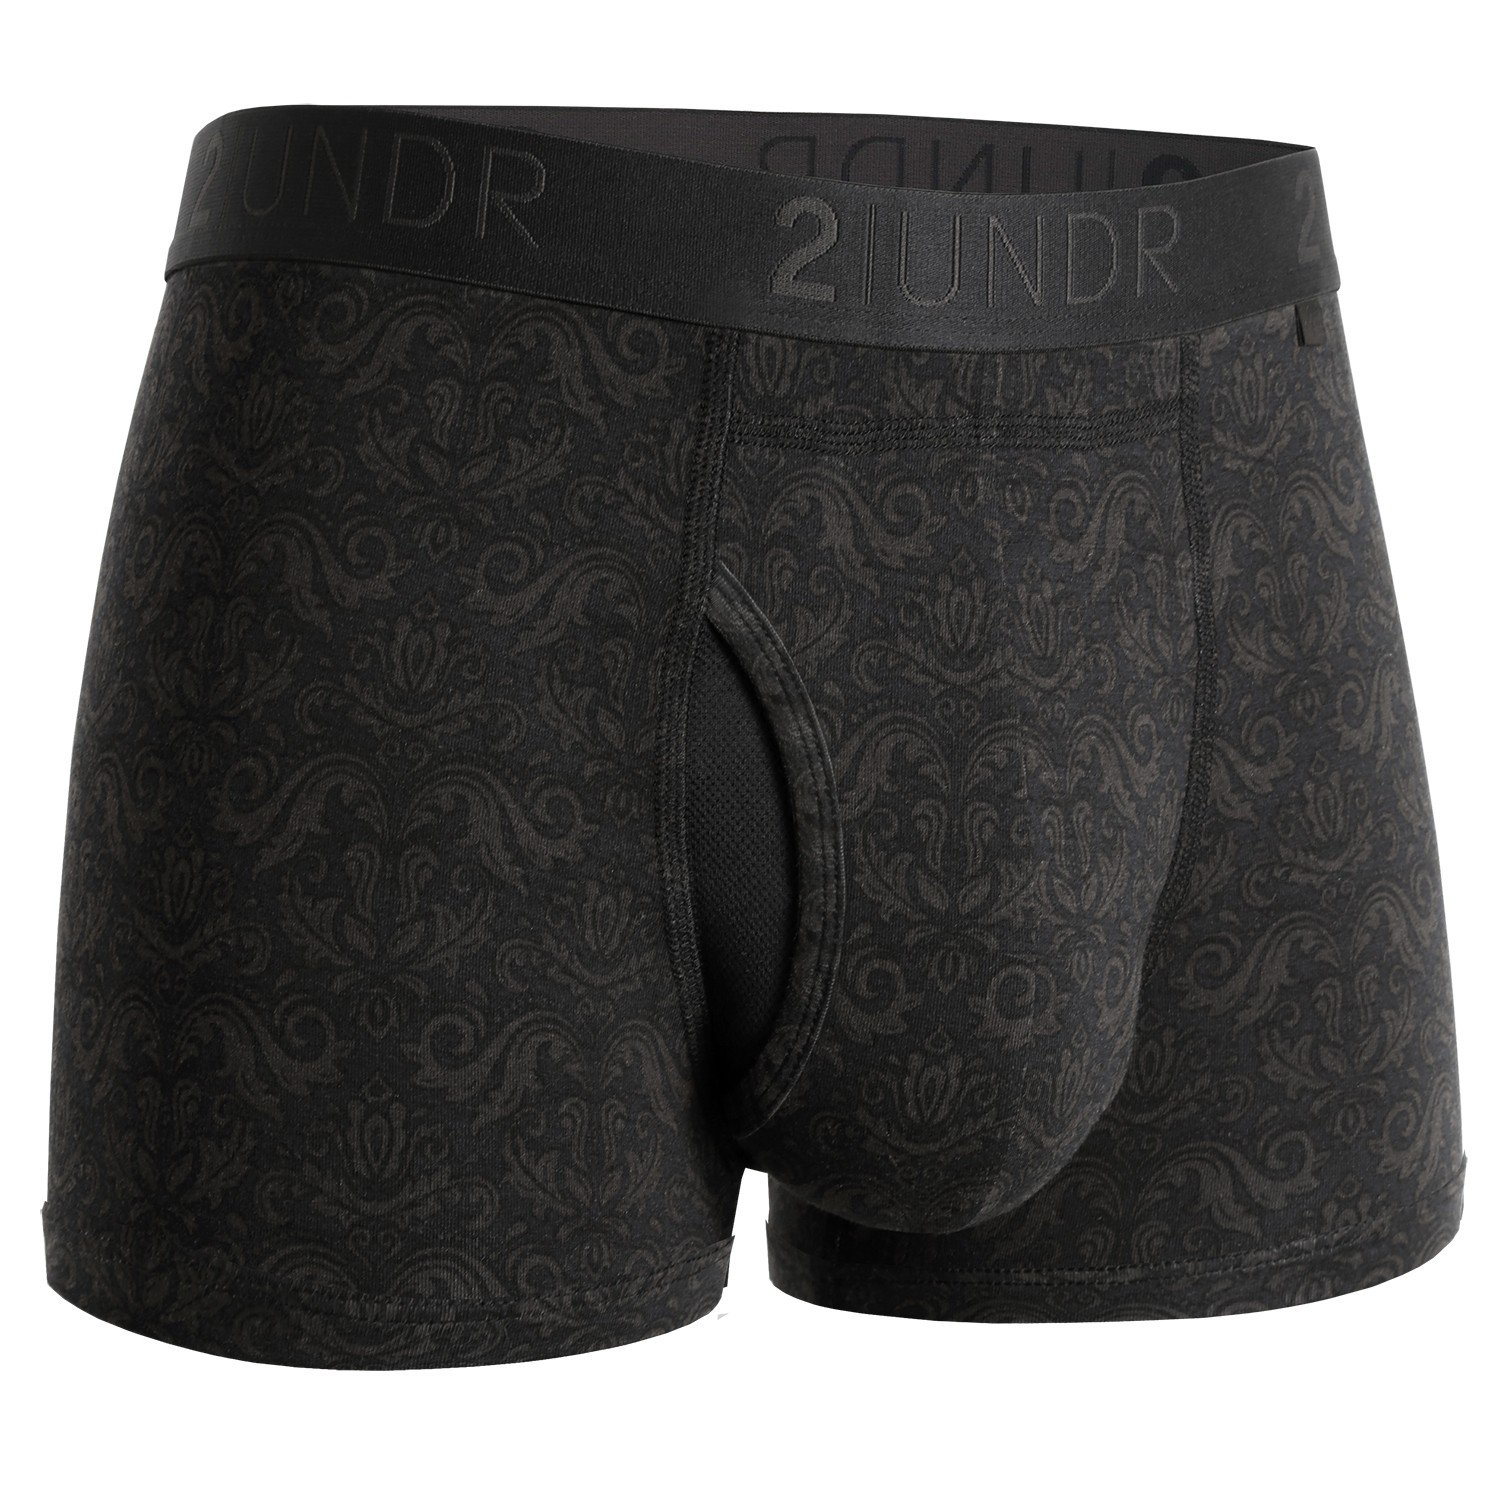 2UNDR Mens Swing Shift Trunk Boxers by 2UNDR